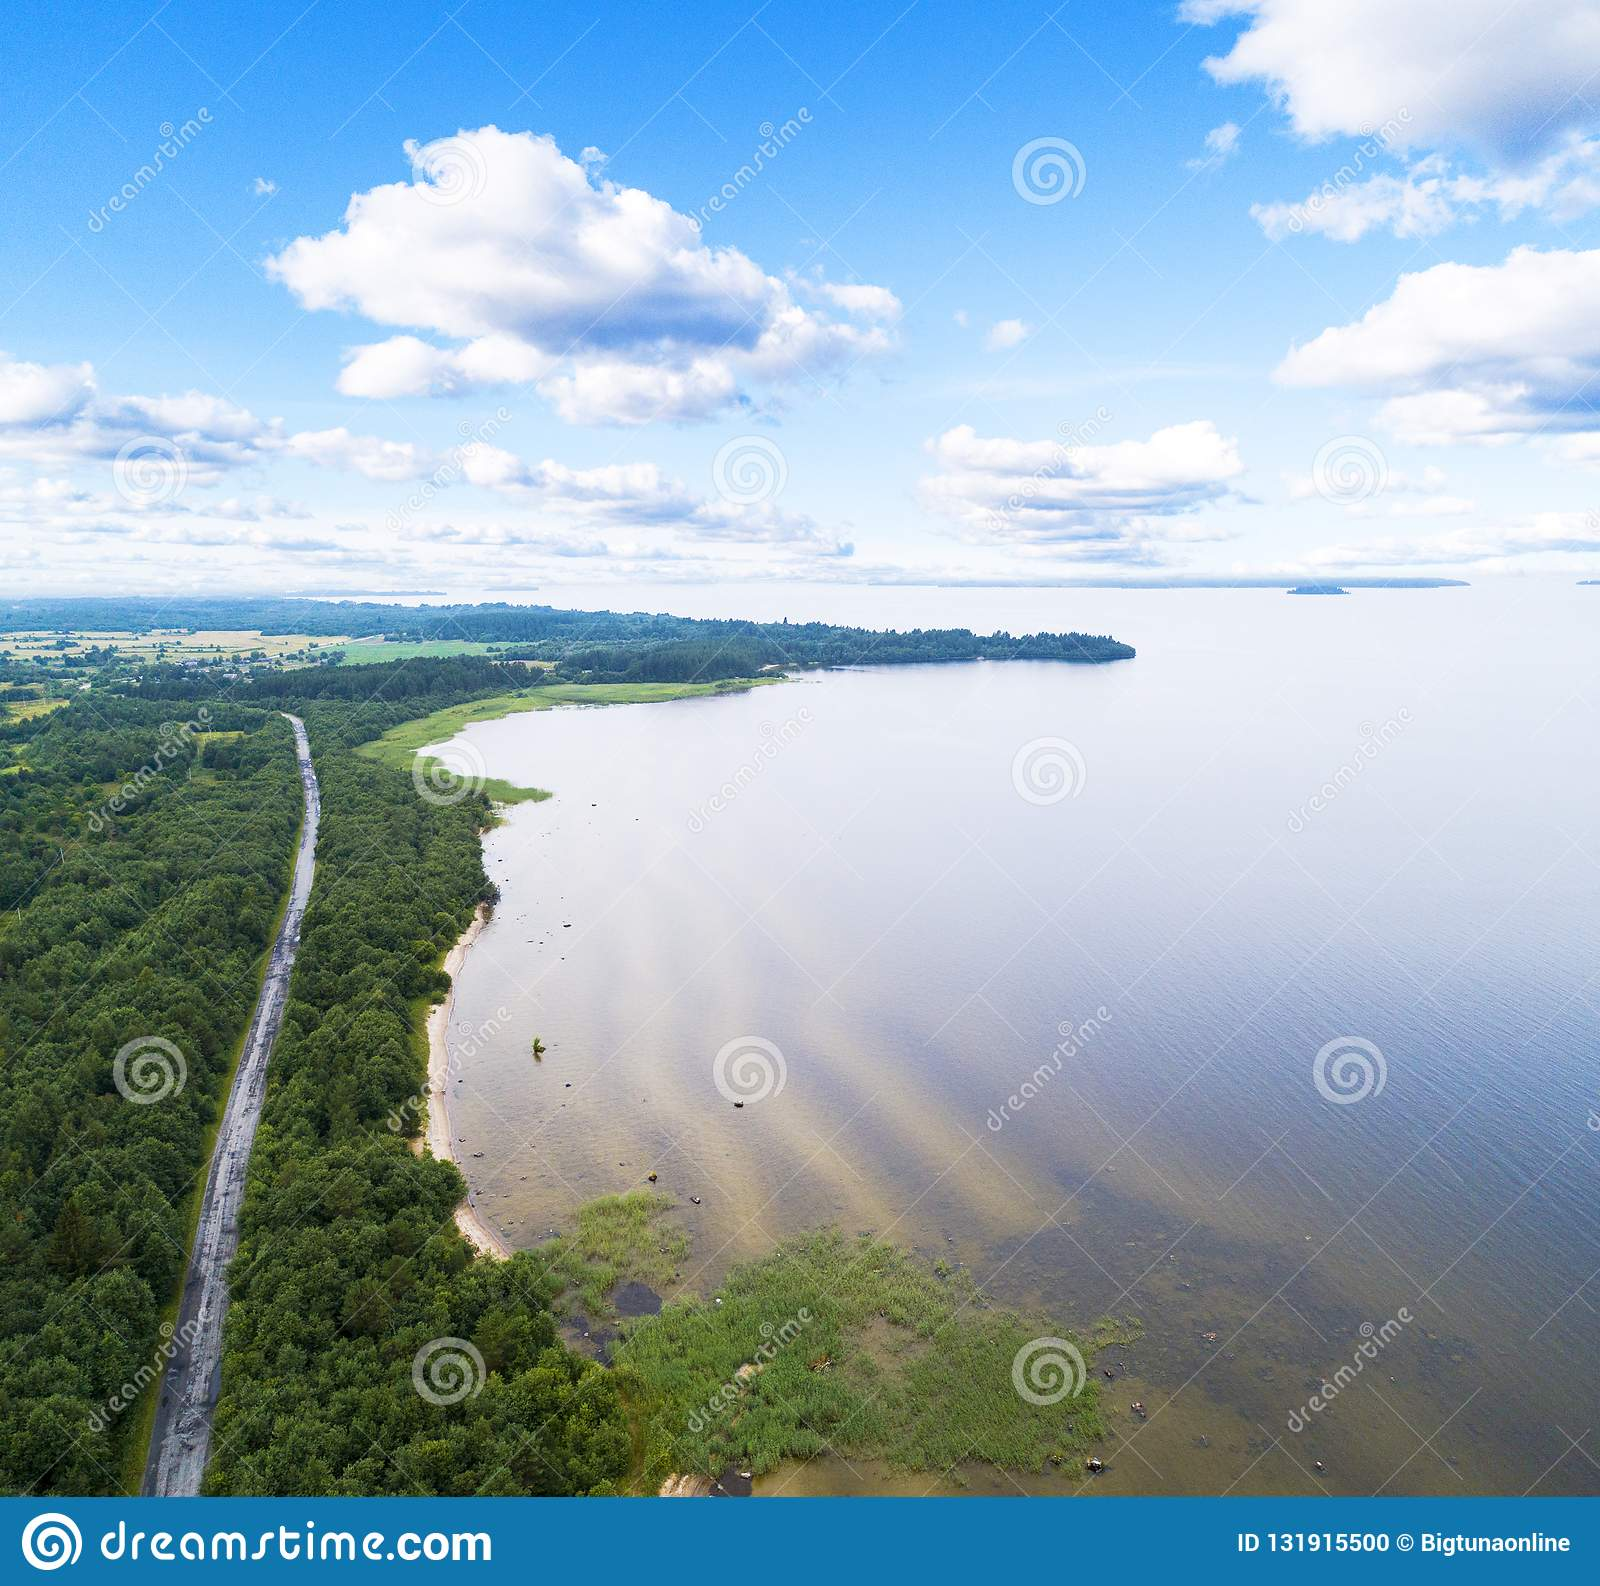 Aerial view of highway. Aerial view of a country road near the lake. Car passing by. Aerial road. Aerial view flying. Captured fro